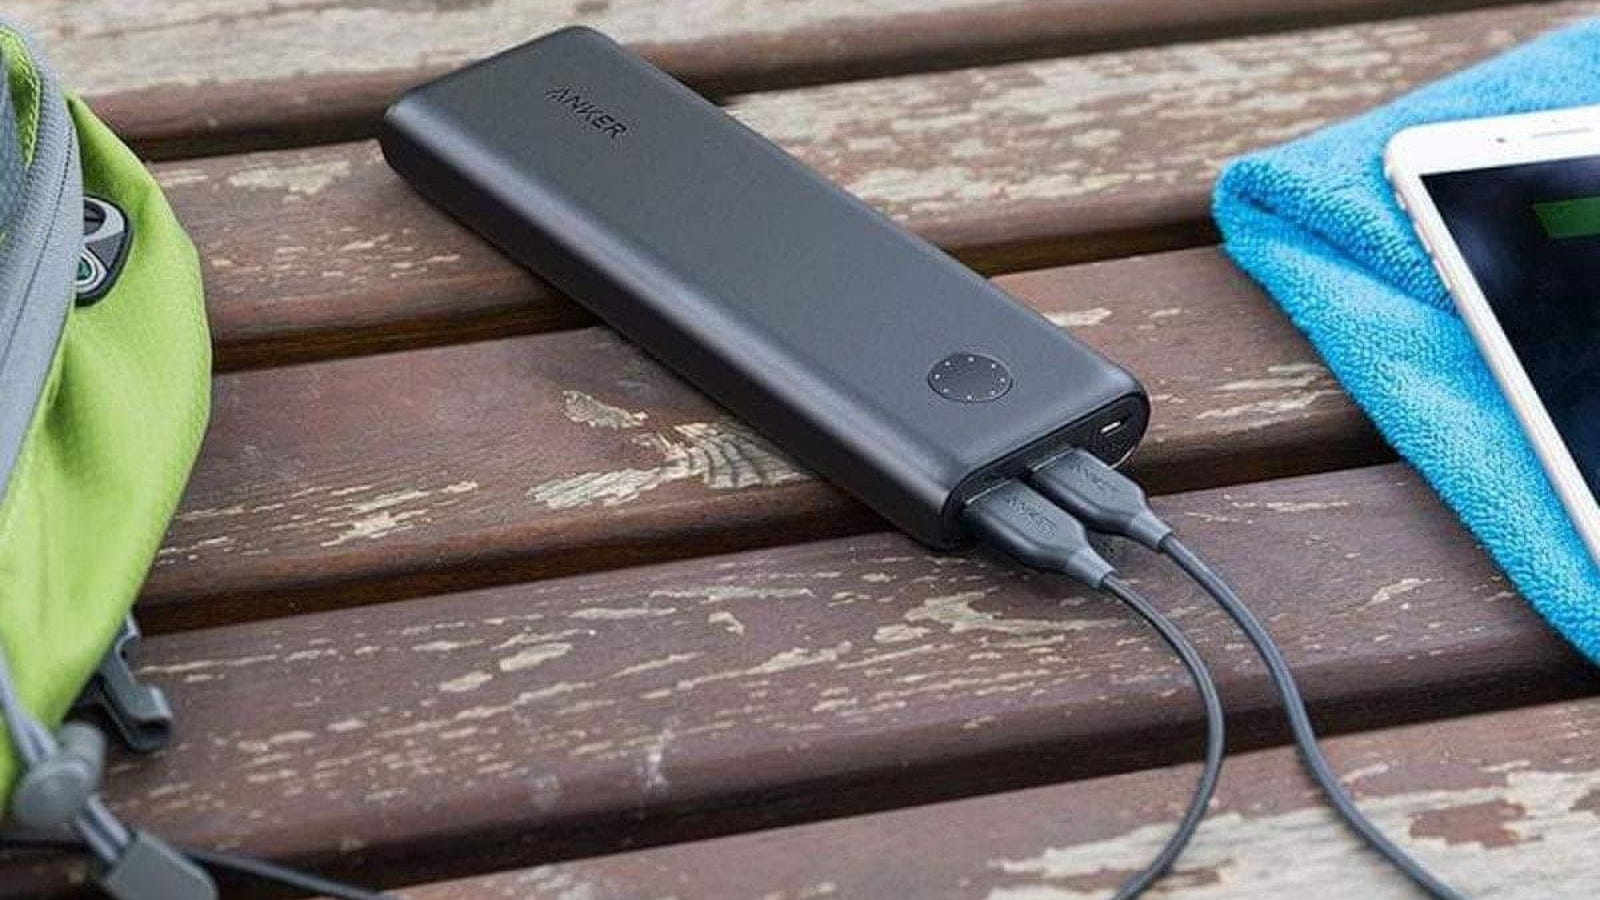 Anker PowerCore II 20000 High-Capacity Portable Charger